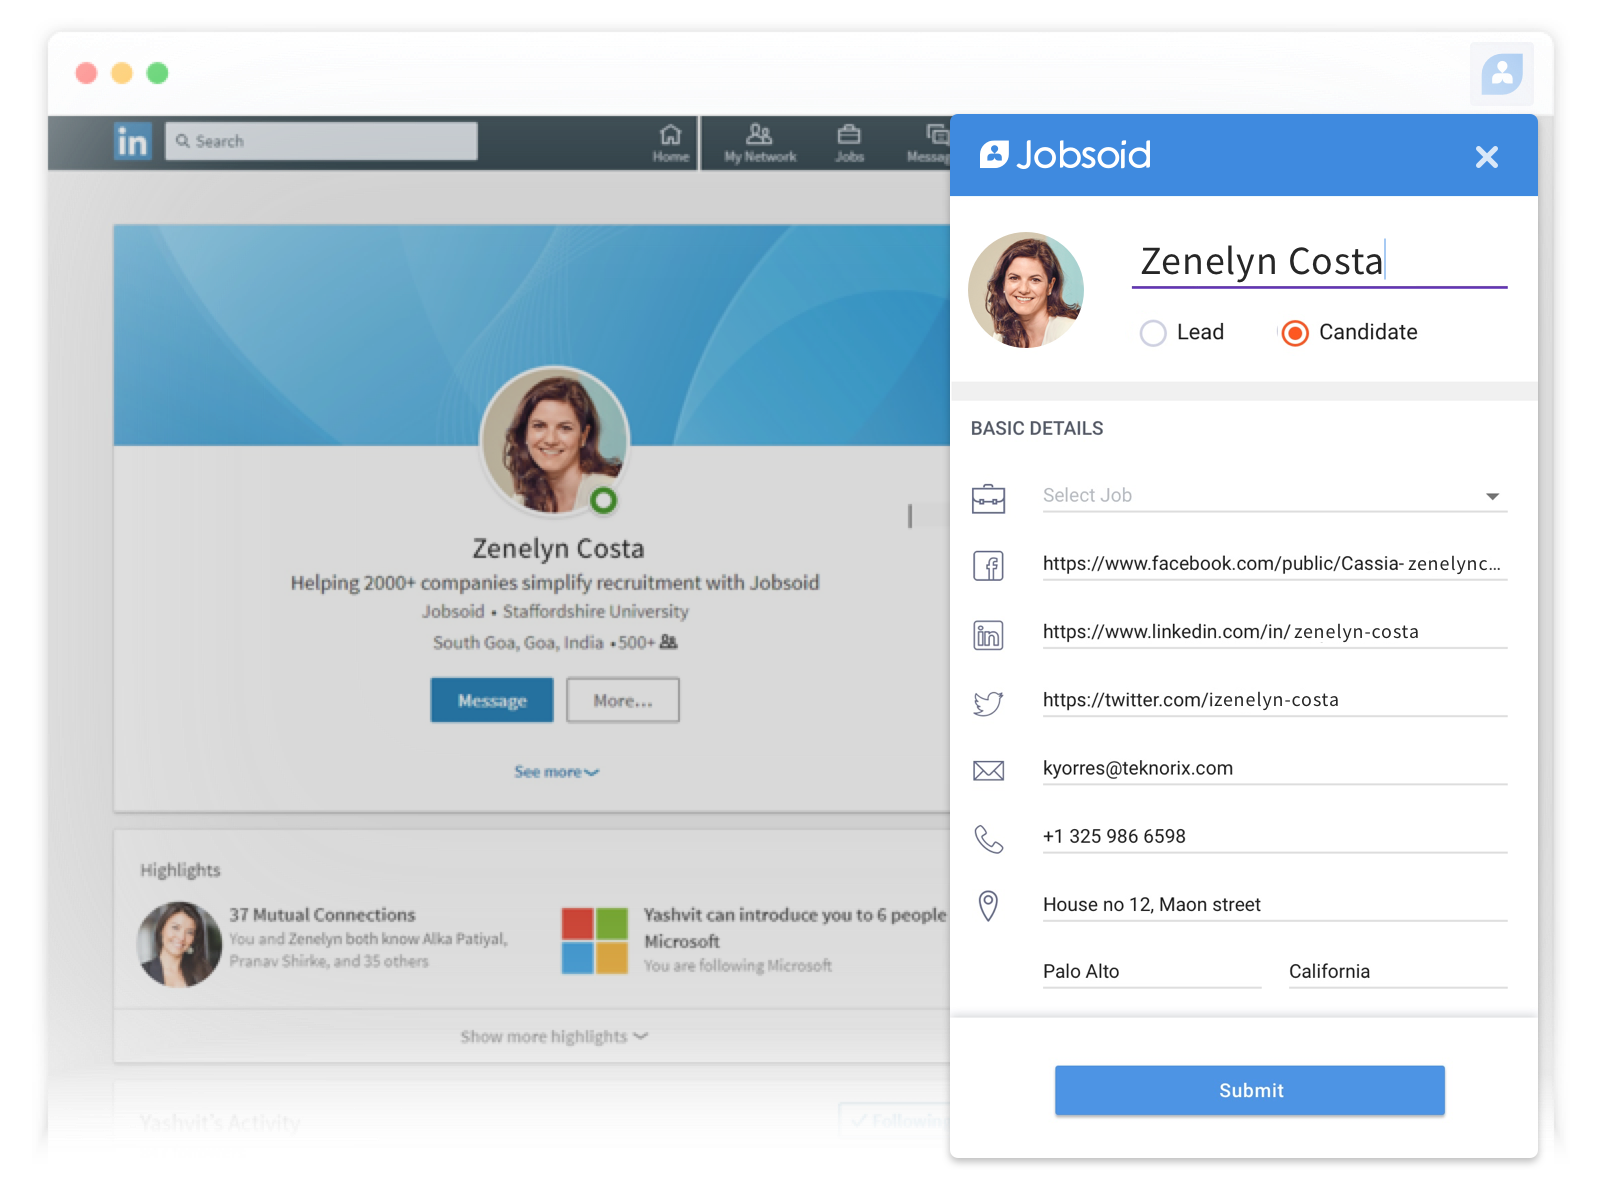 Source candidates from LinkedIn directly in just one click. Install Jobsoid Chrome Plugin and get started with candidate sourcing. Build your talent pool online and hire the best talent.